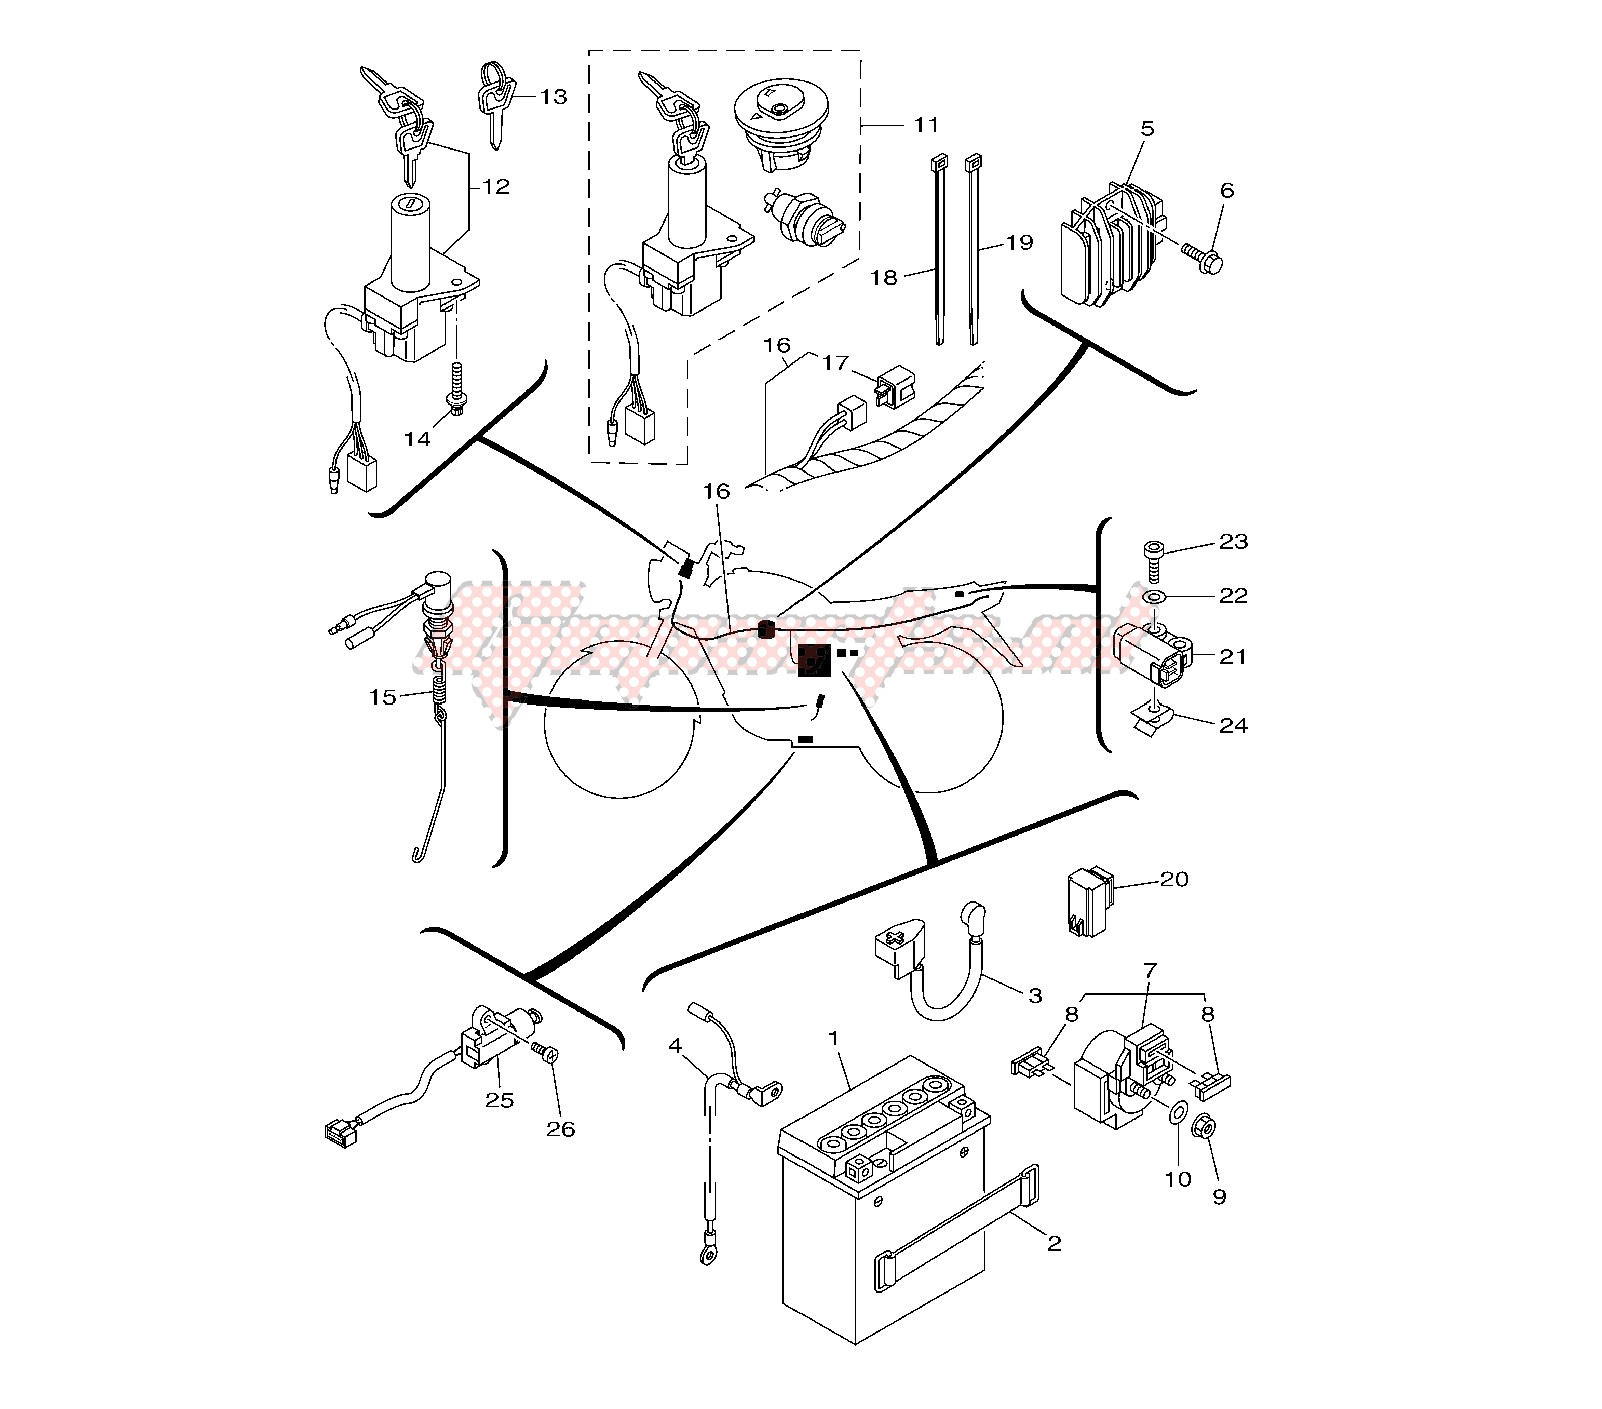 Clutch Diagram Printable Wiring Diagram Schematic Harness On Yamaha